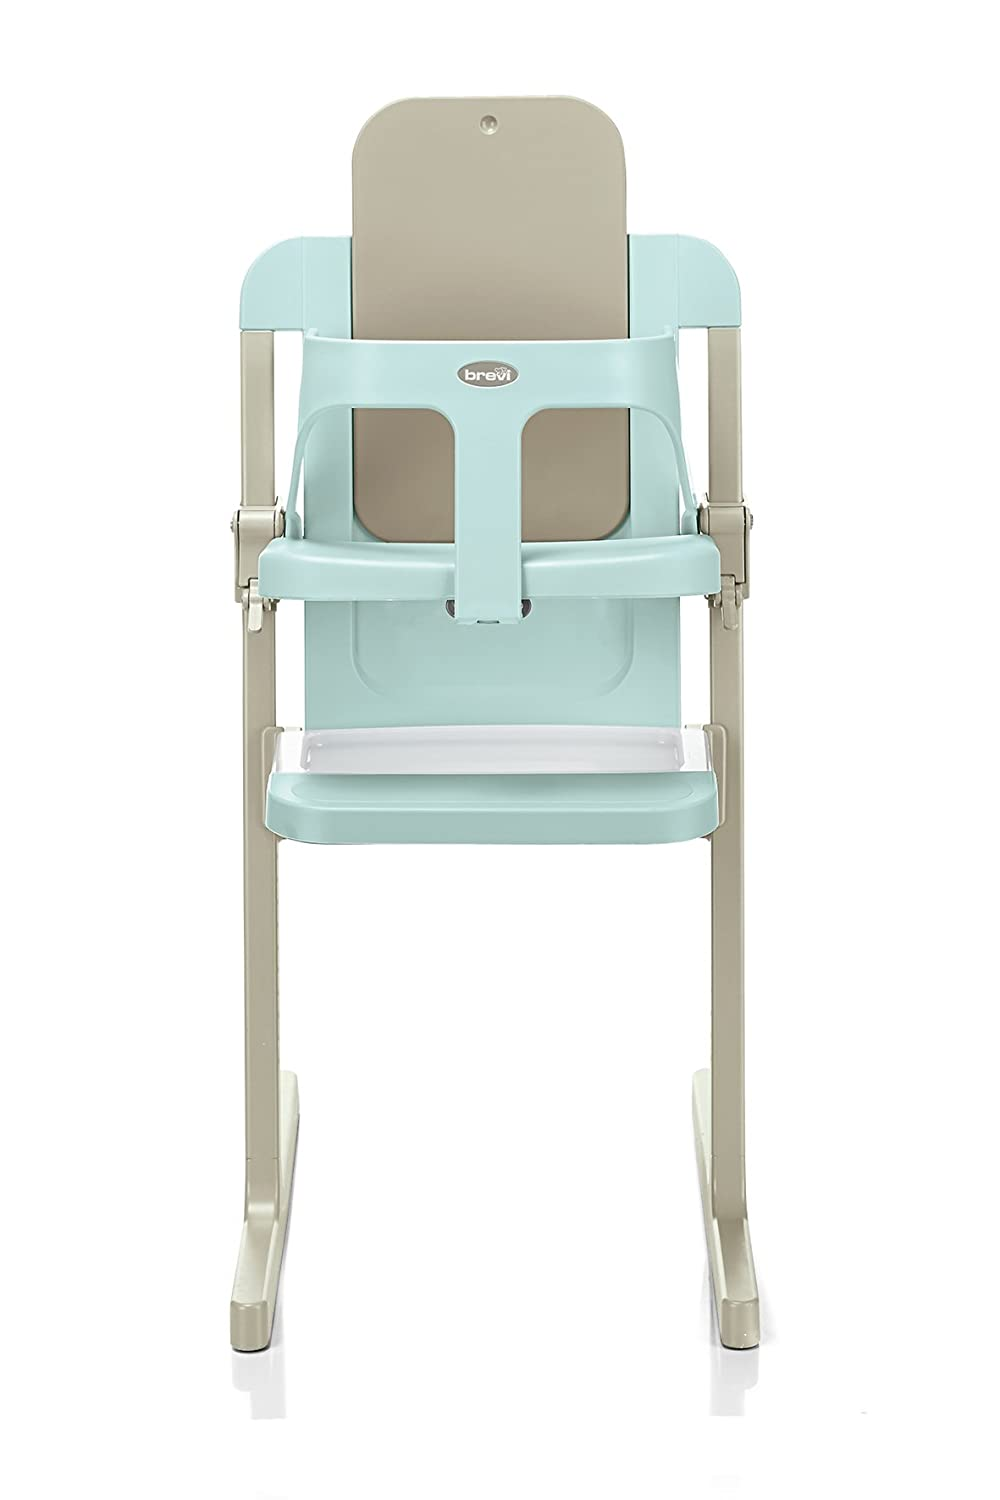 Highchair Covers Amp Cushions Online Shopping For Clothing